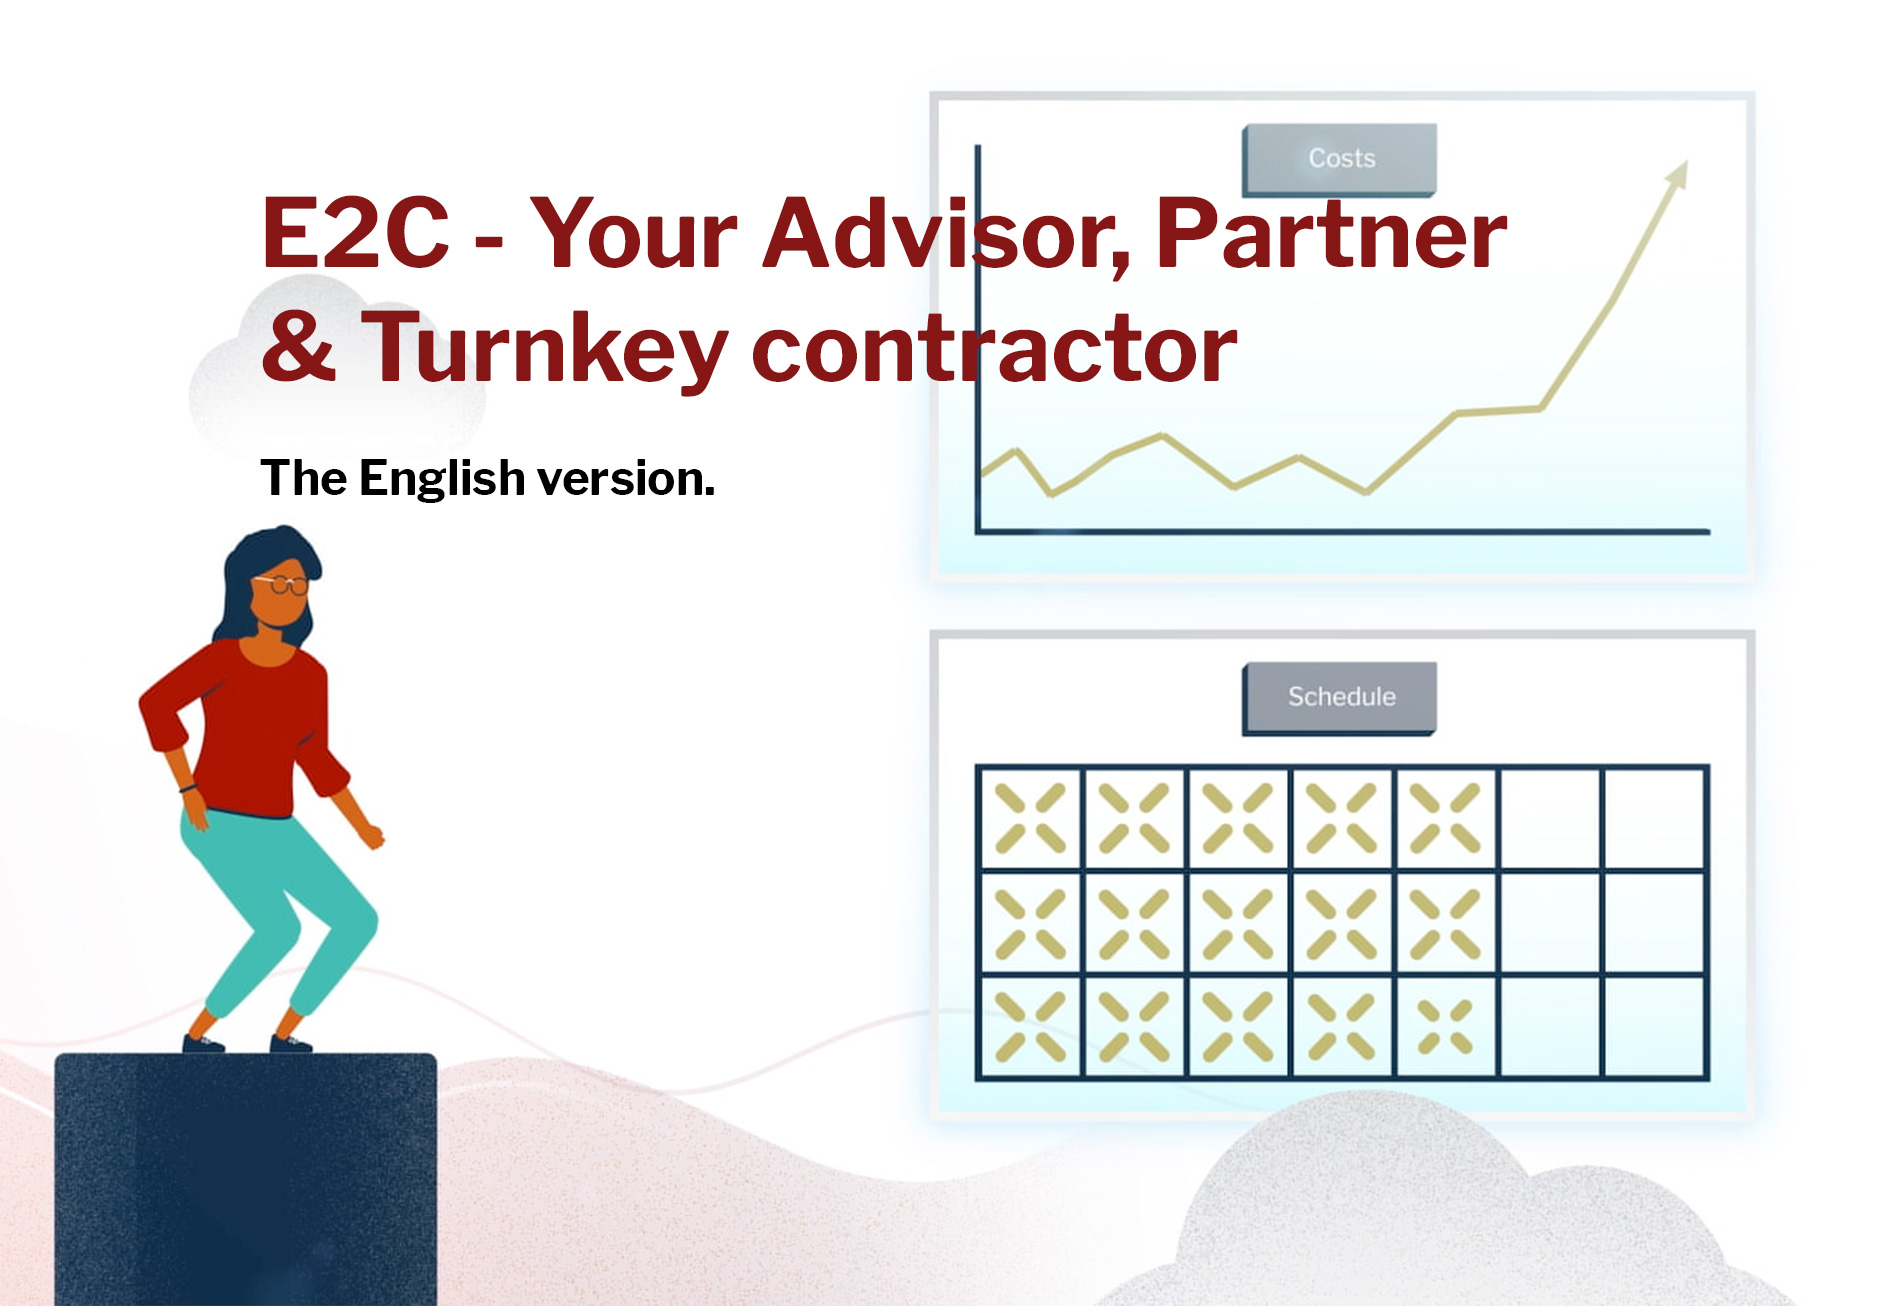 The film: E2C - Your Advisor, Partner & Turnkey contractor